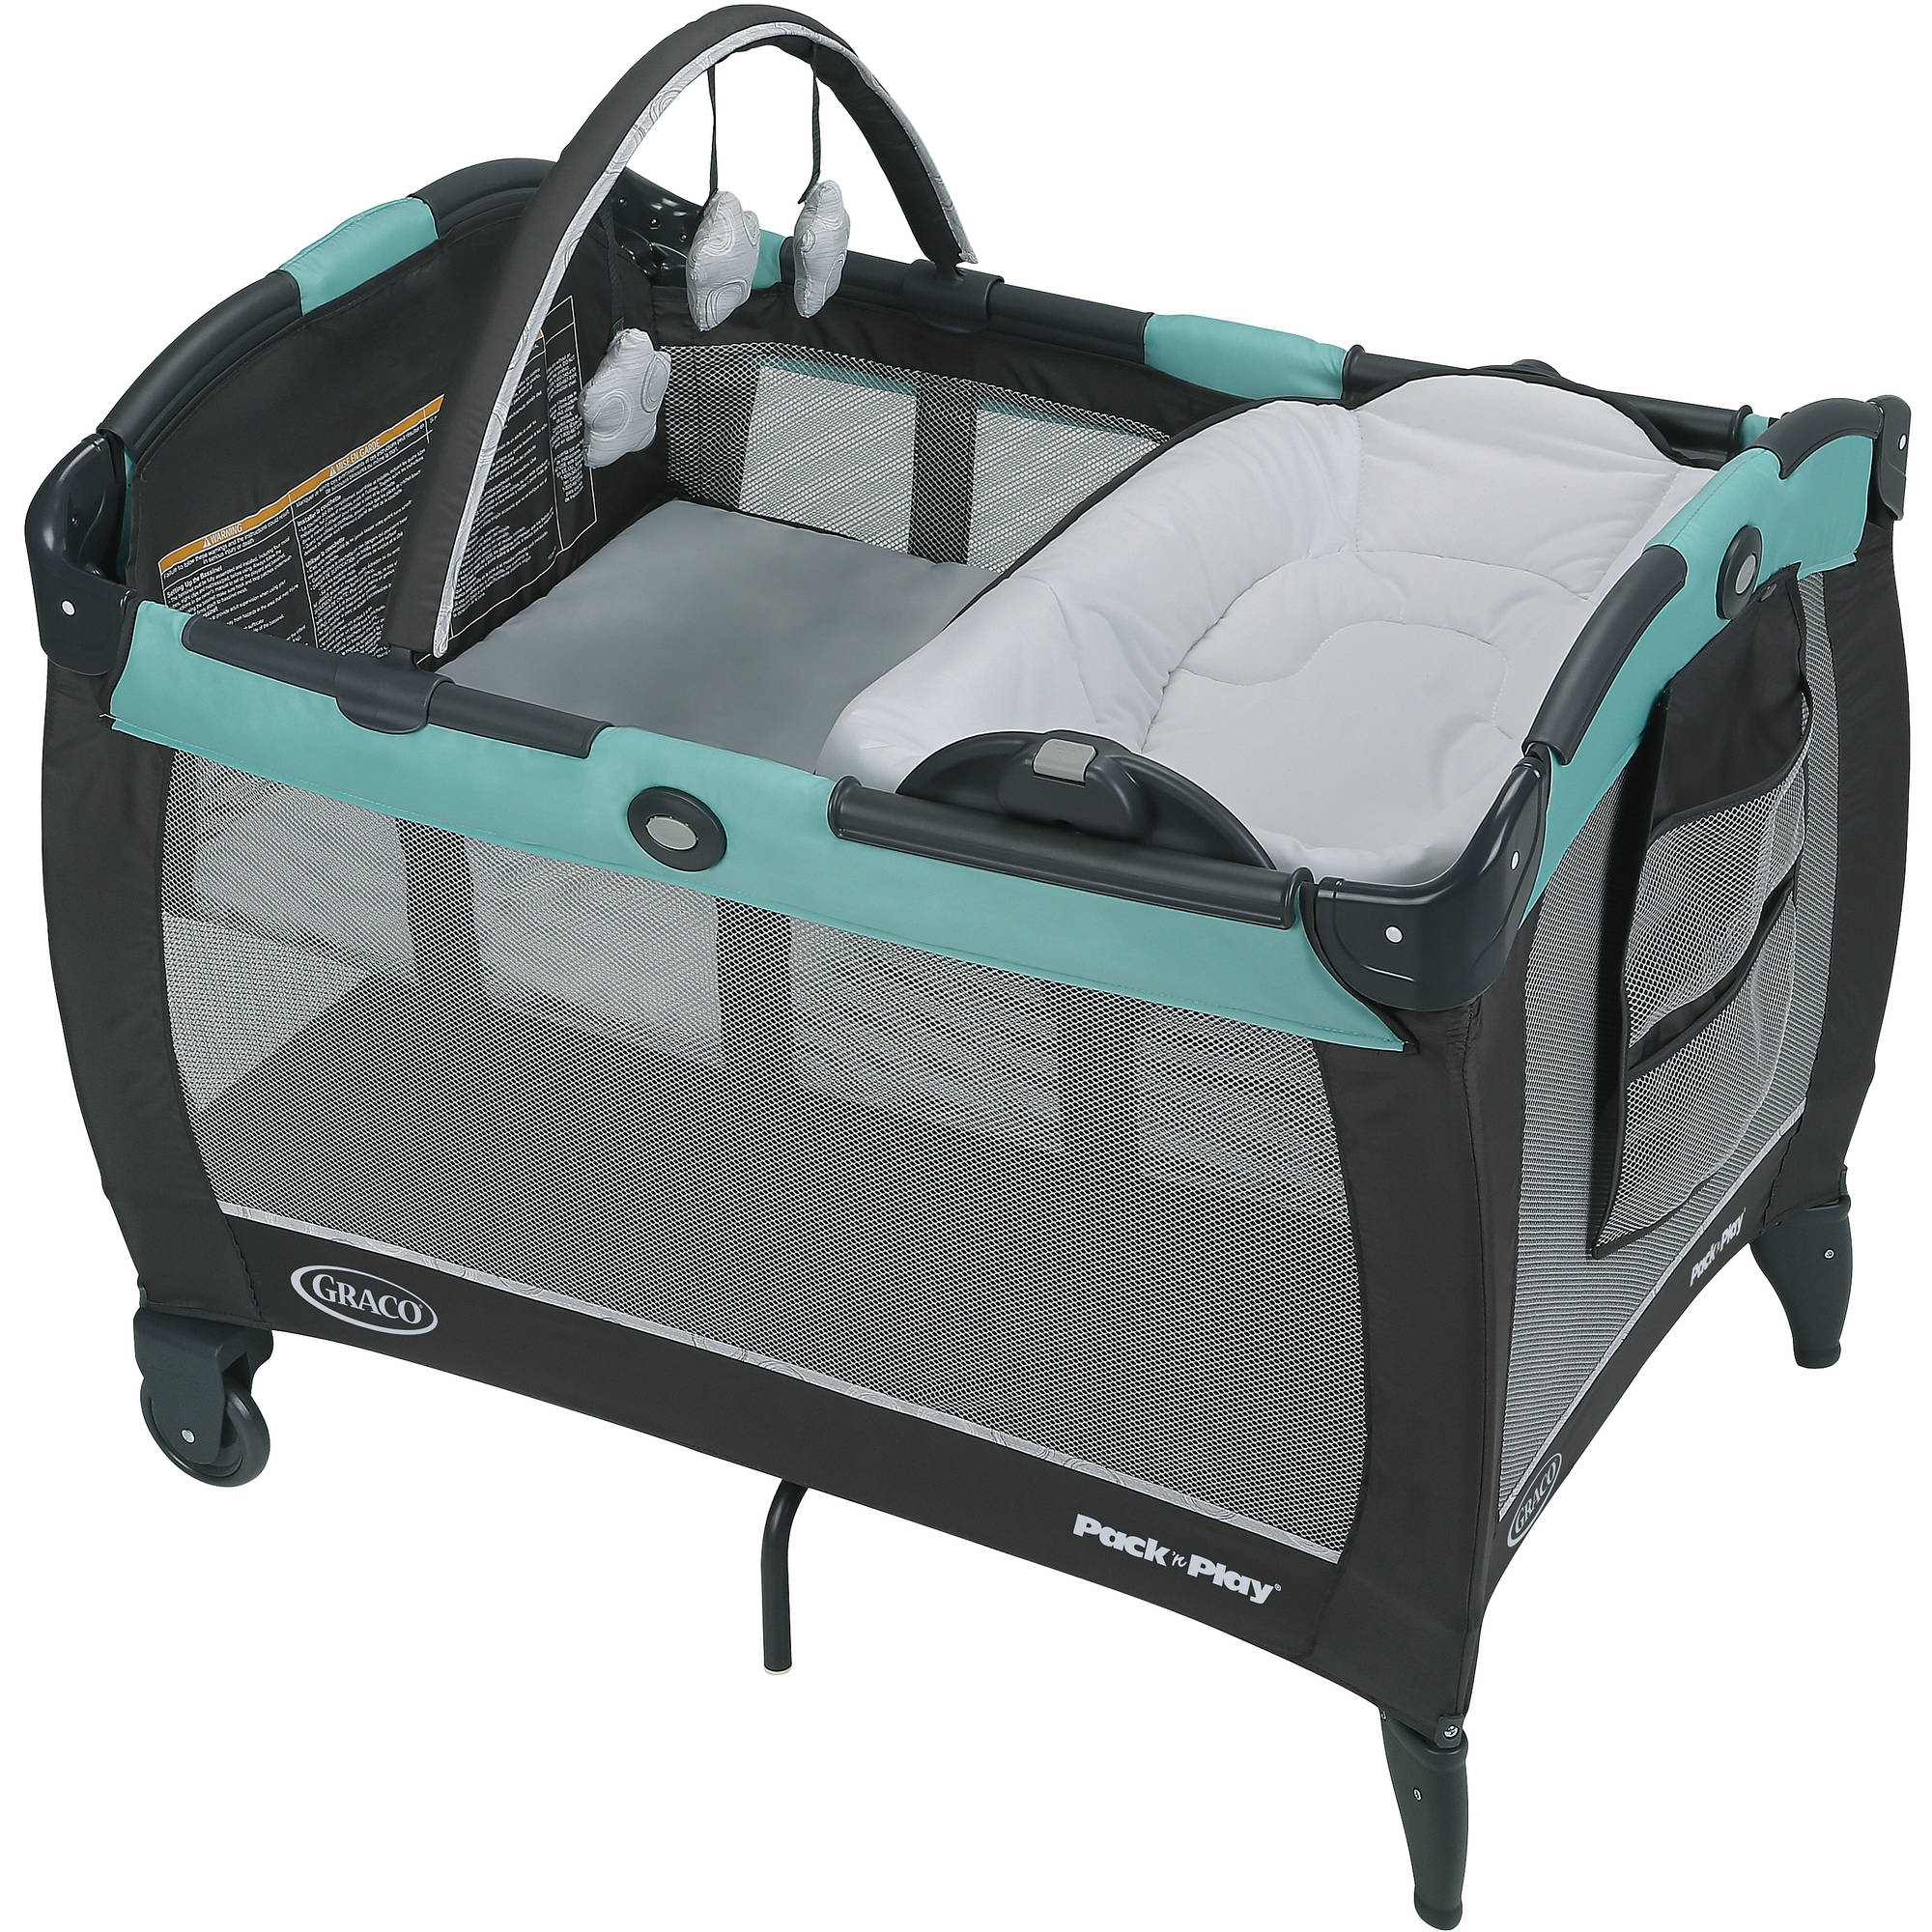 Graco Pack 'n Play Play Pen Reversible Napper & Changer LX Bassinet, Tenley by Graco